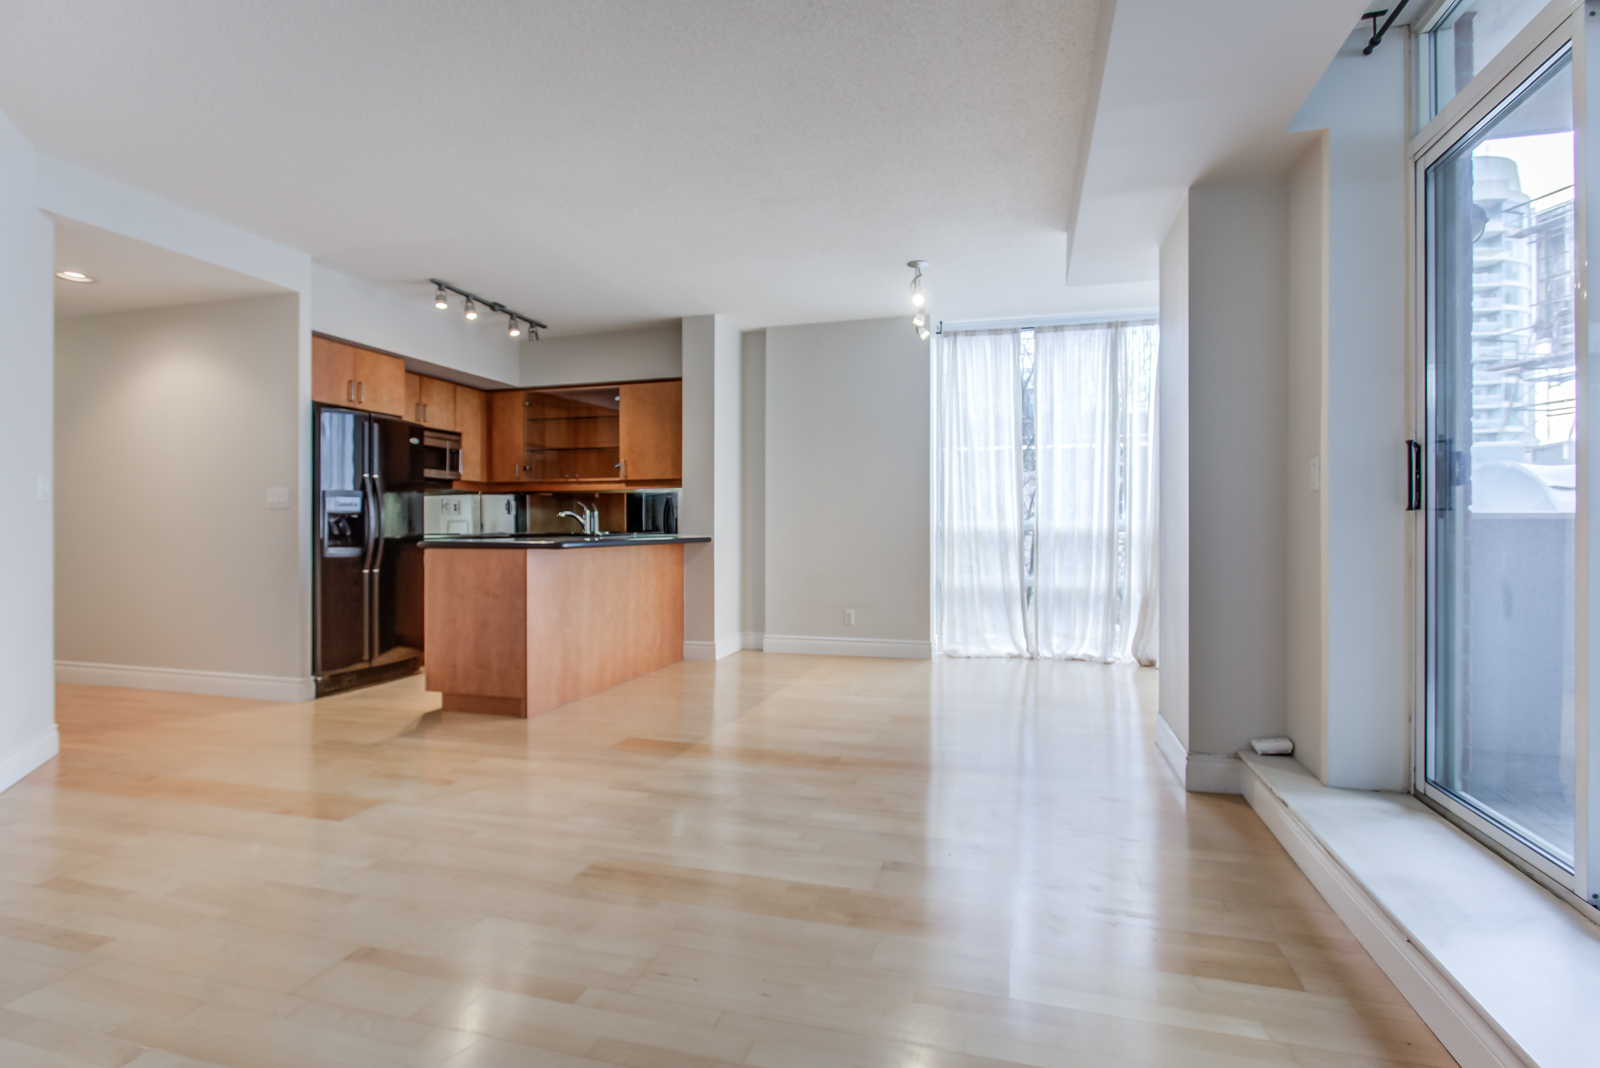 Empty living, dining & kitchen area of 20 Collier St Unit 408 with shiny hardwood floors.